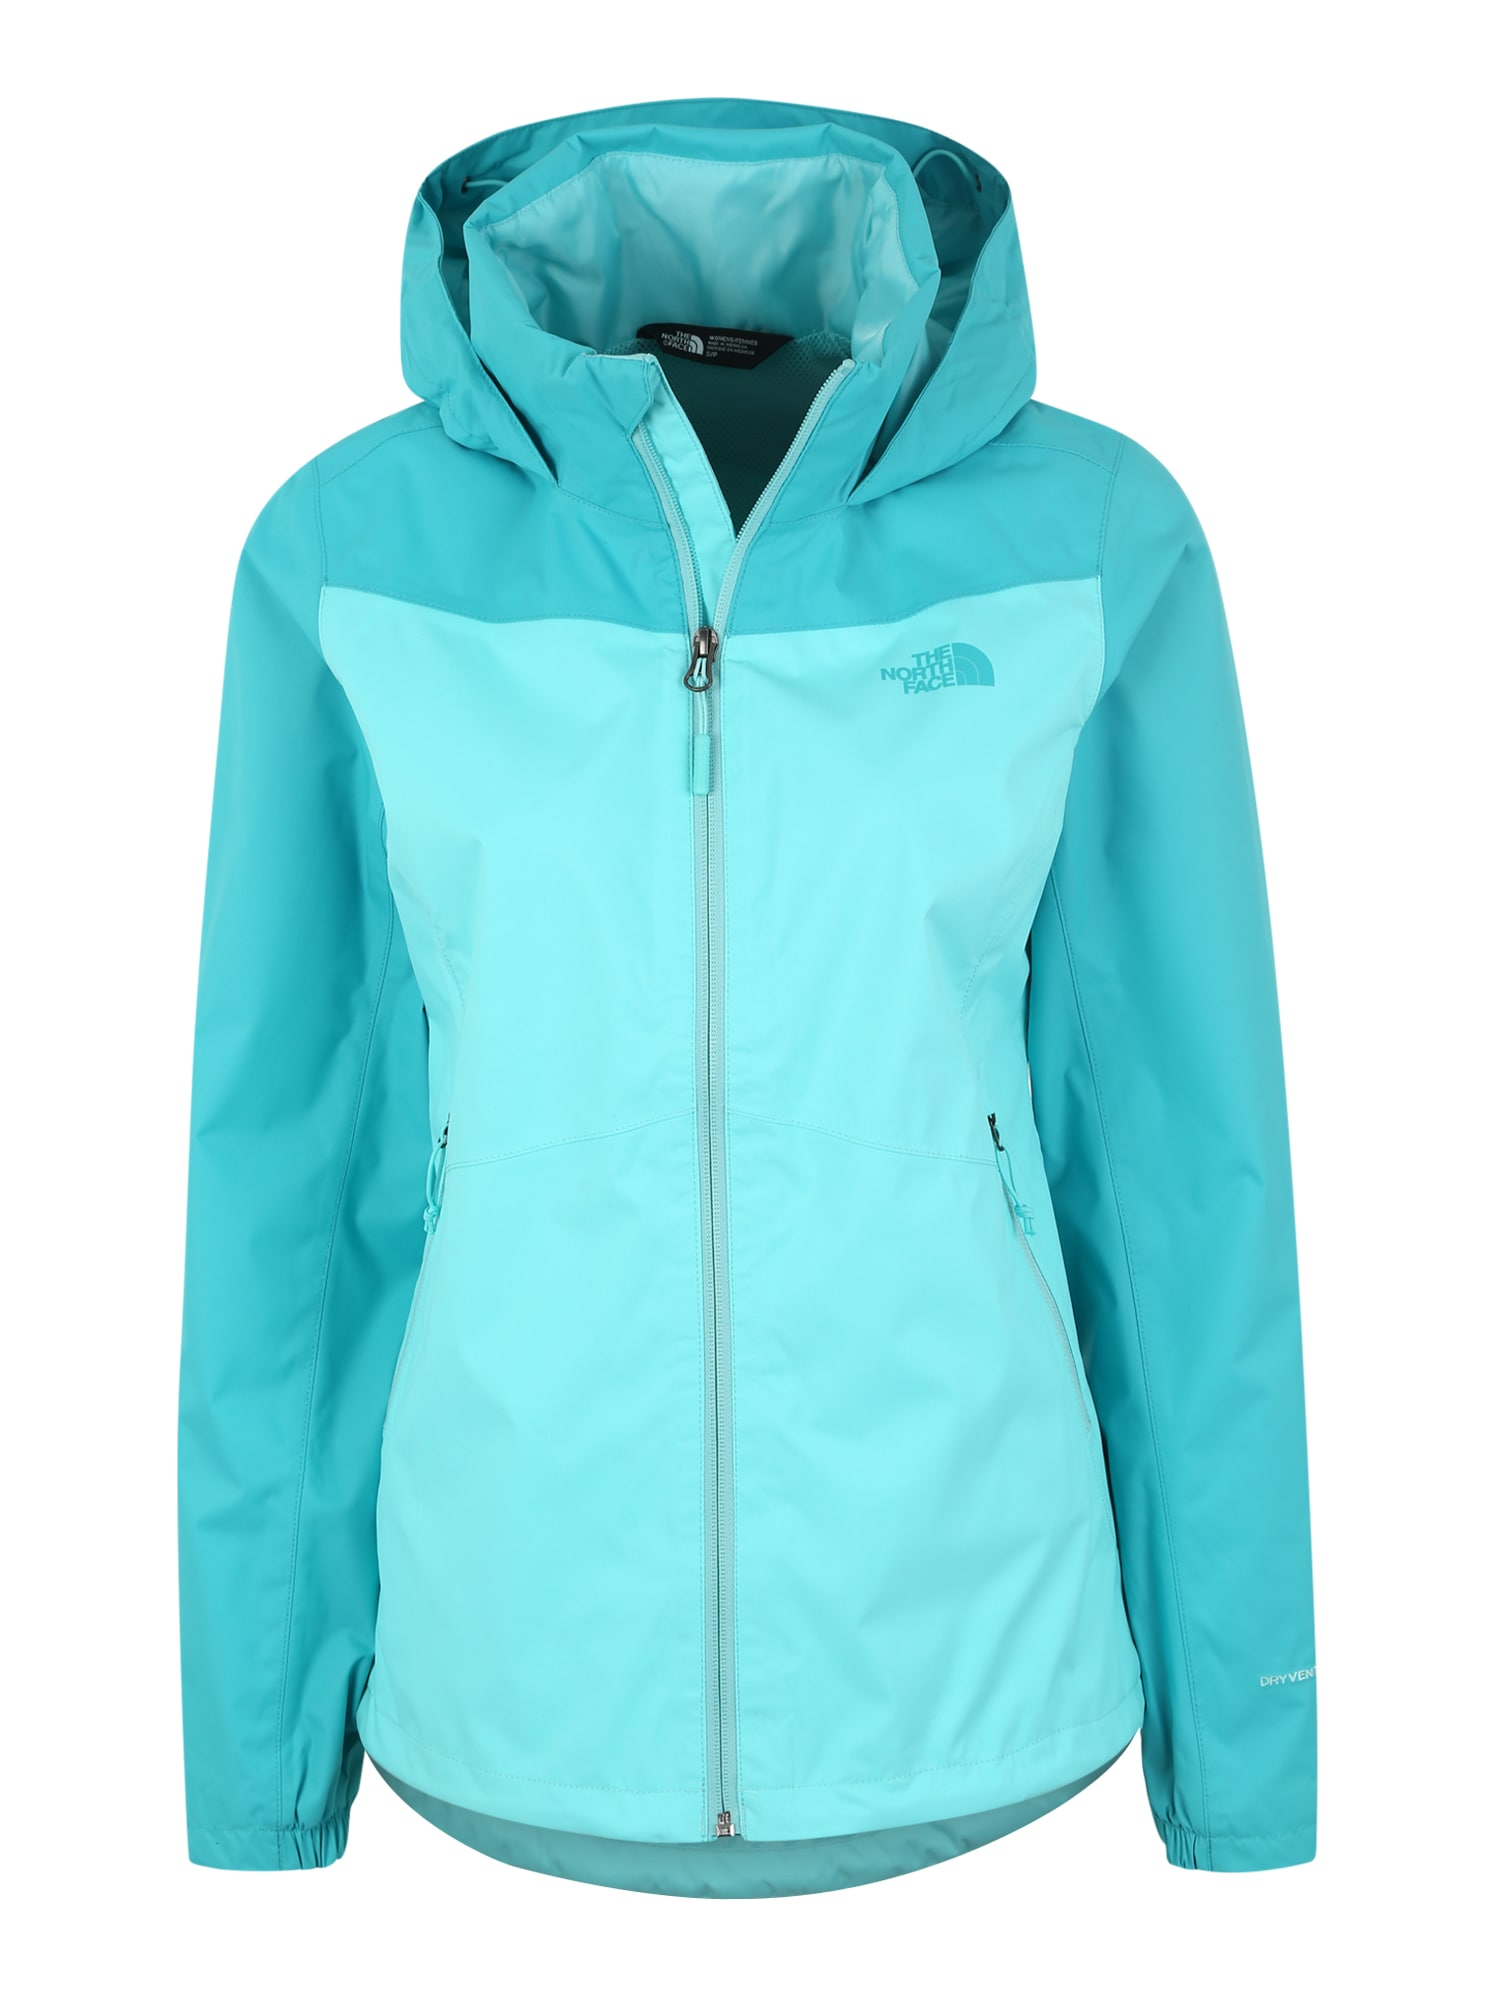 Sportovní bunda W RESOLVE PLUS JKT aqua modrá THE NORTH FACE